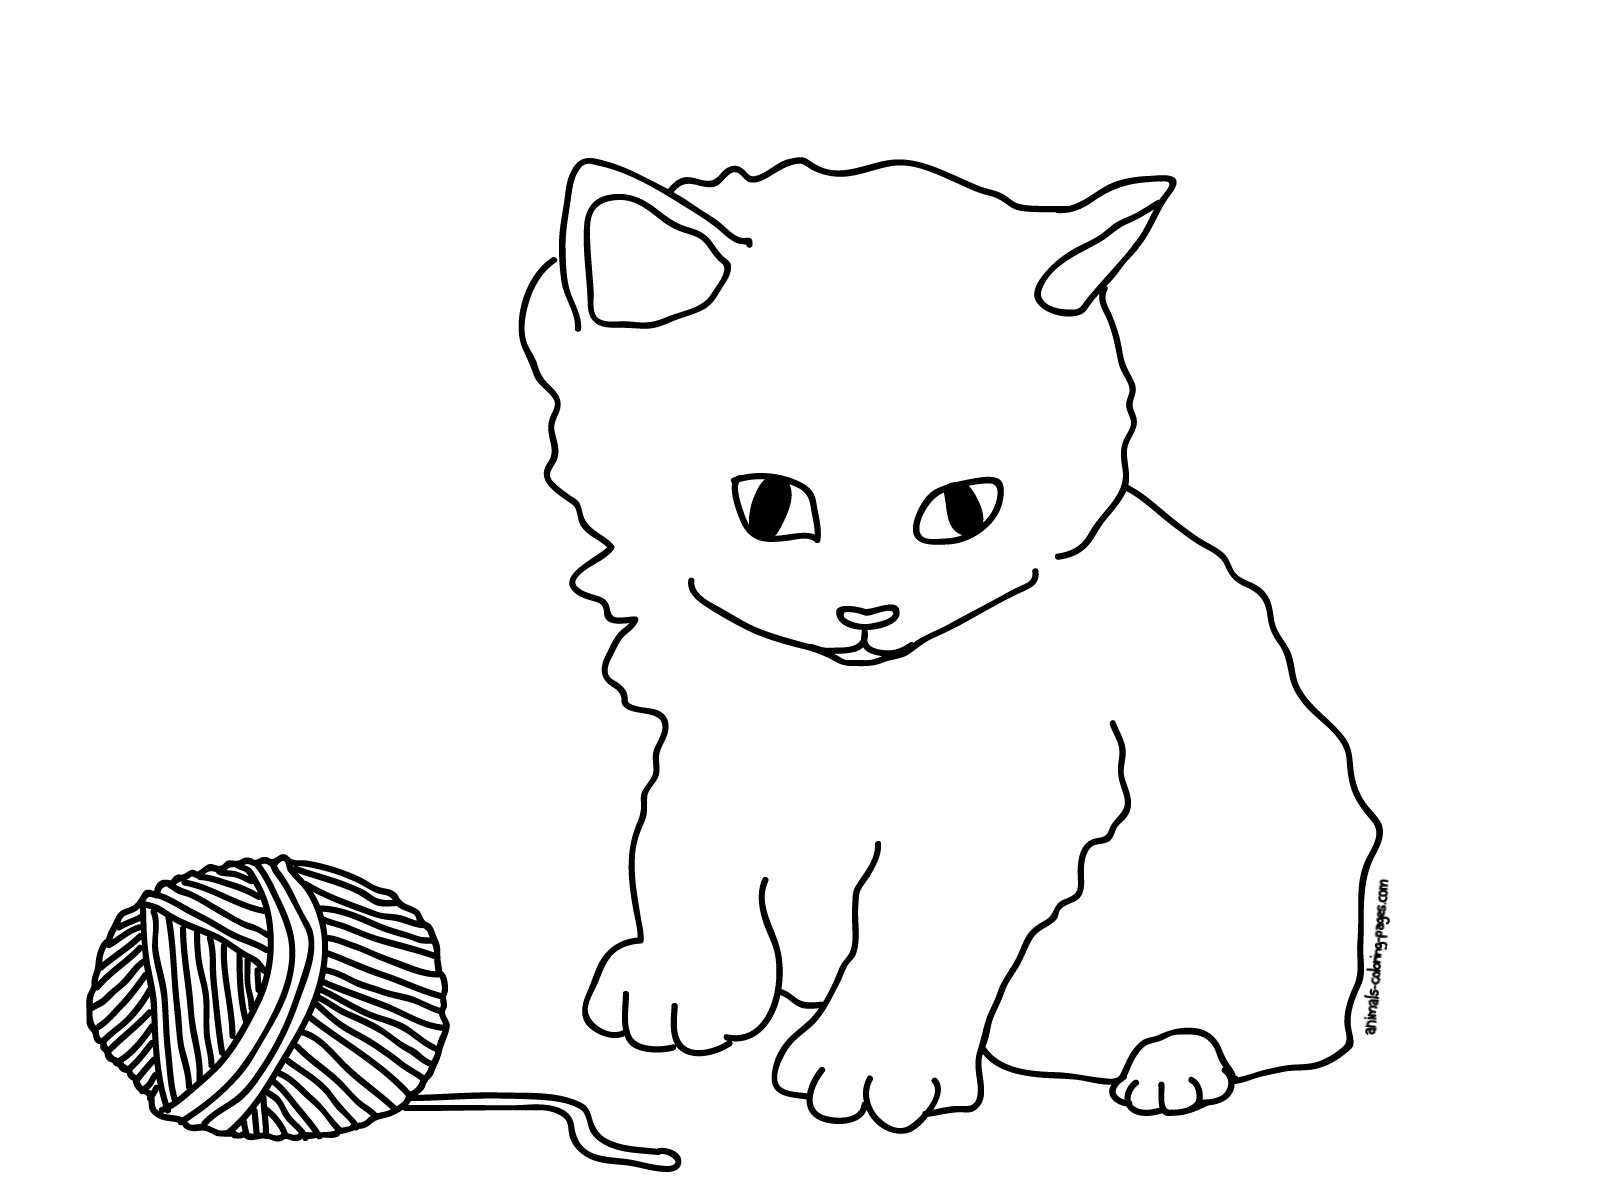 Coloring Pages: Cats and Kittens Coloring Pages Free and ...